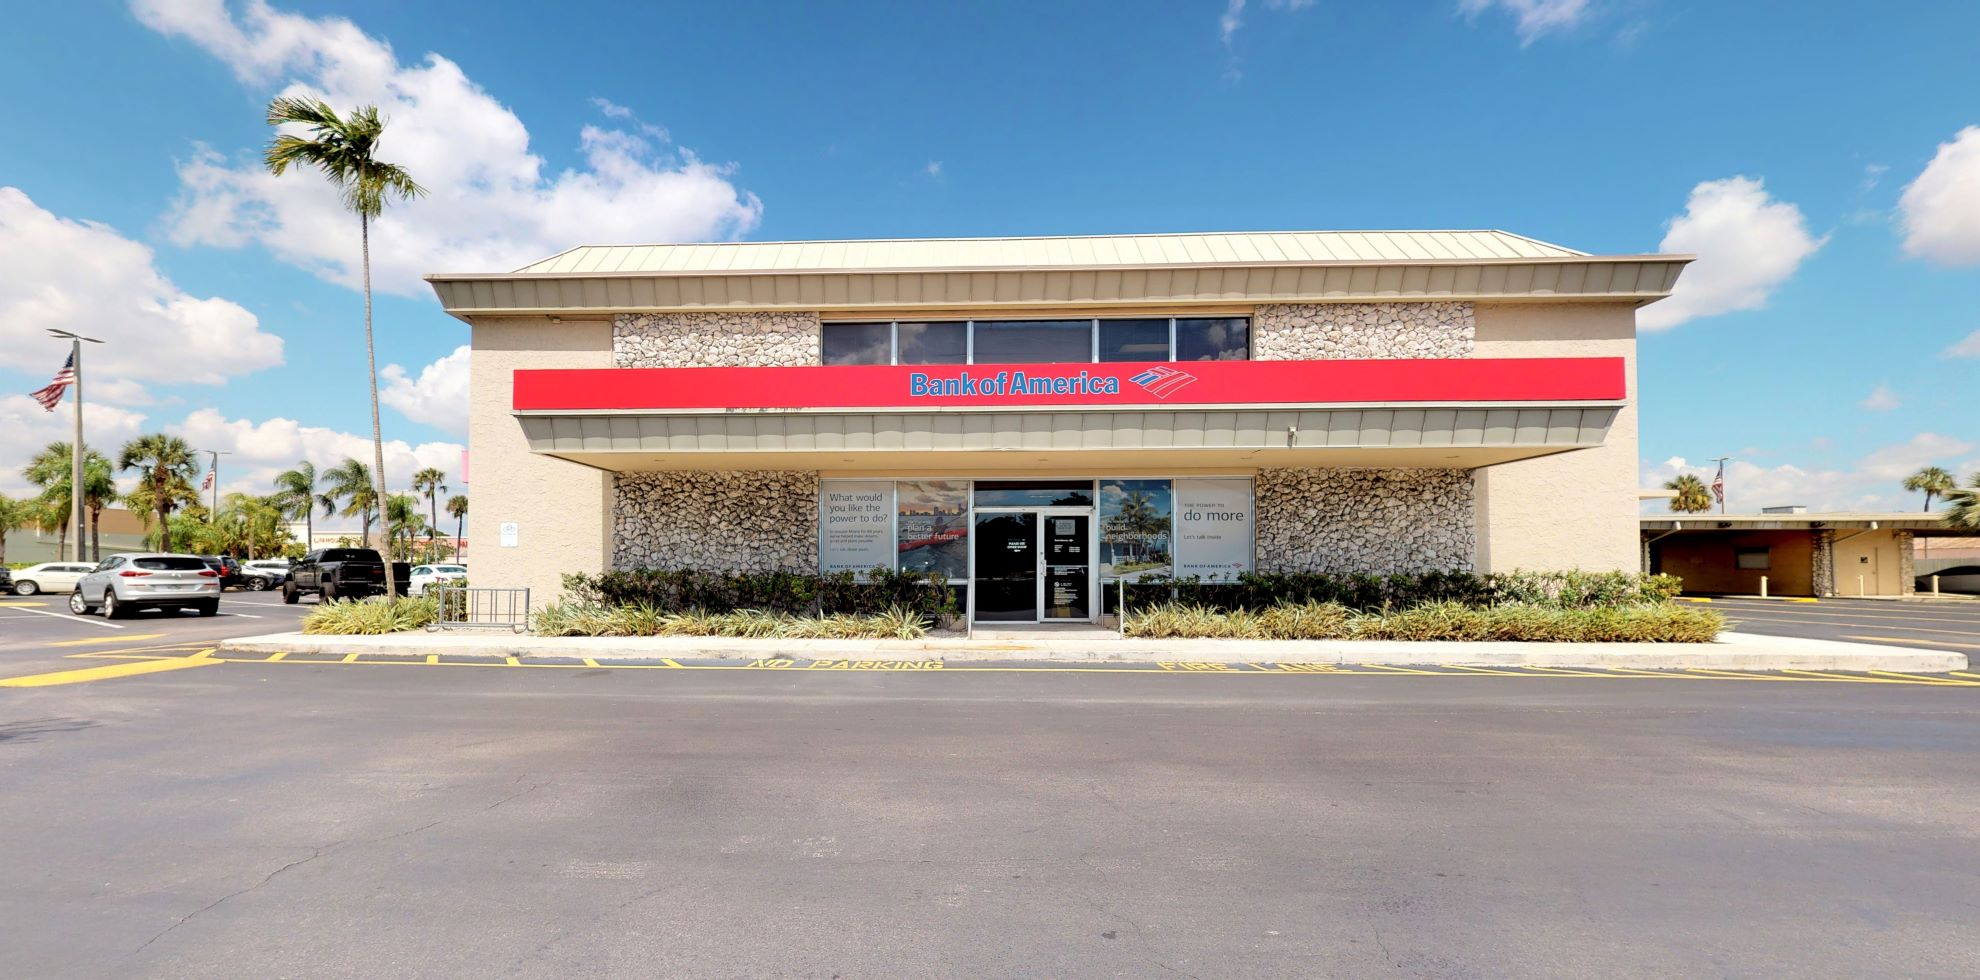 Bank of America financial center with drive-thru ATM   8585 Coral Way, Miami, FL 33155